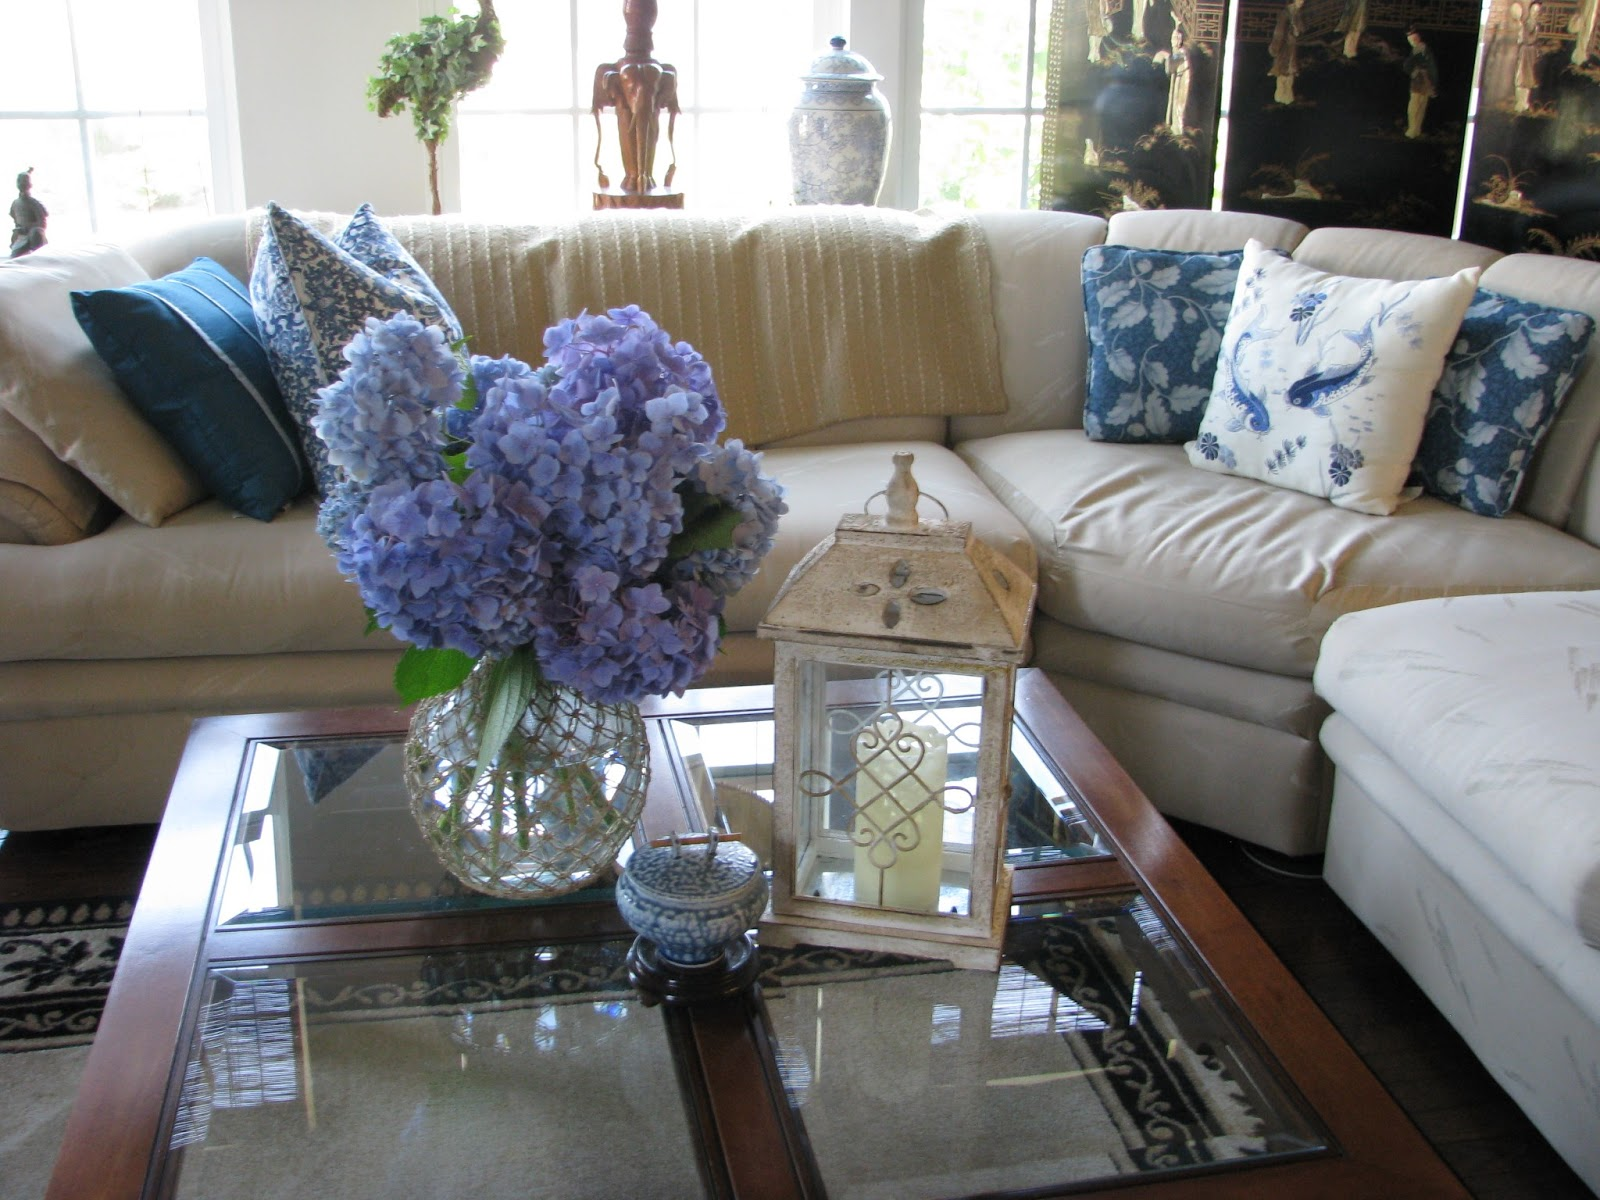 Designs by Pinky Hydrangeas on the Coffee Table and New Pillows